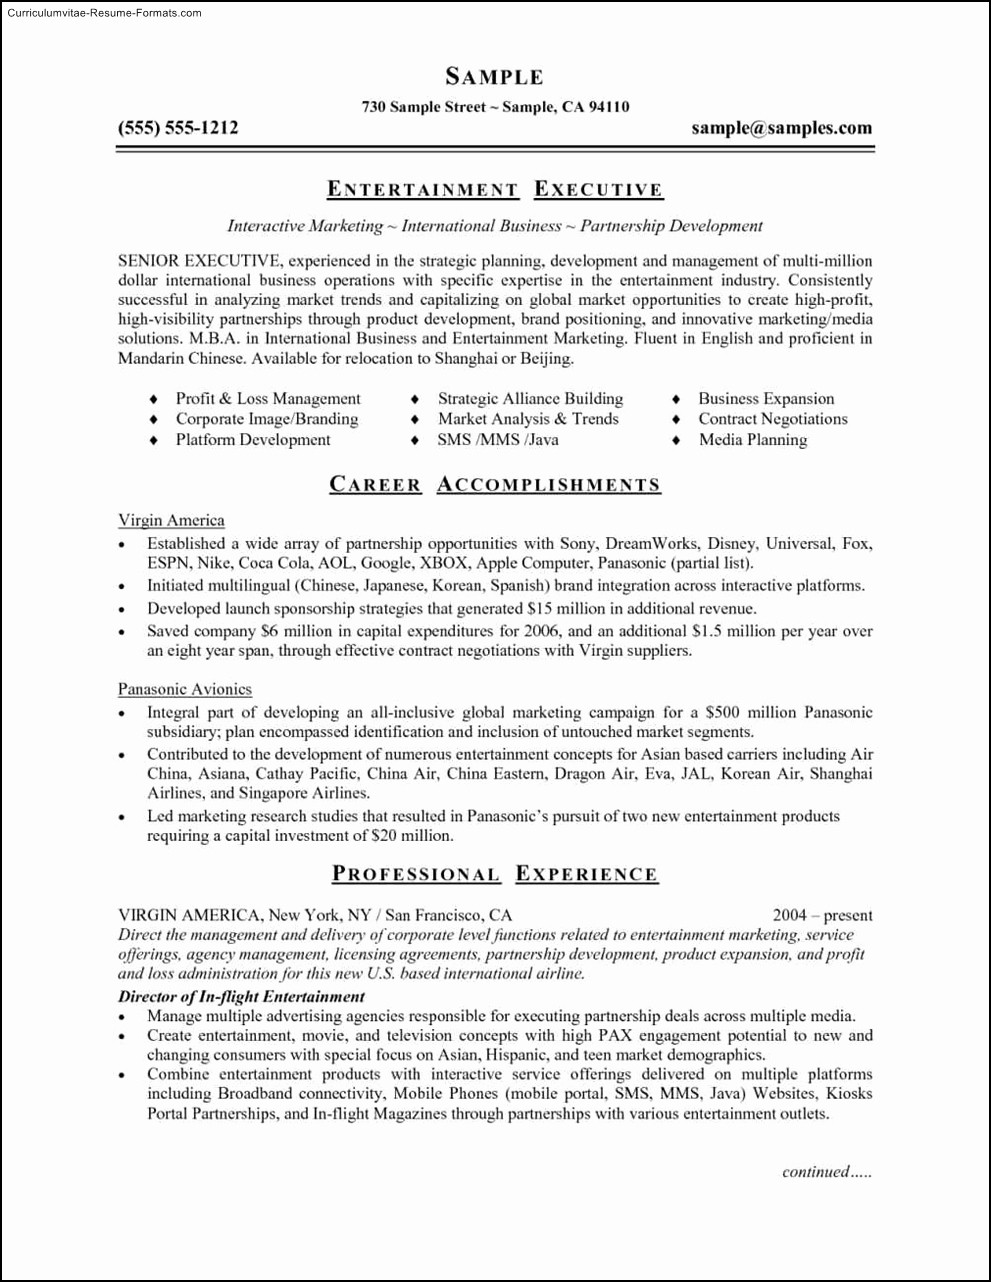 Microsoft Office Word Resume Template Awesome Microsoft Word 2003 Resume Template Free Download Free